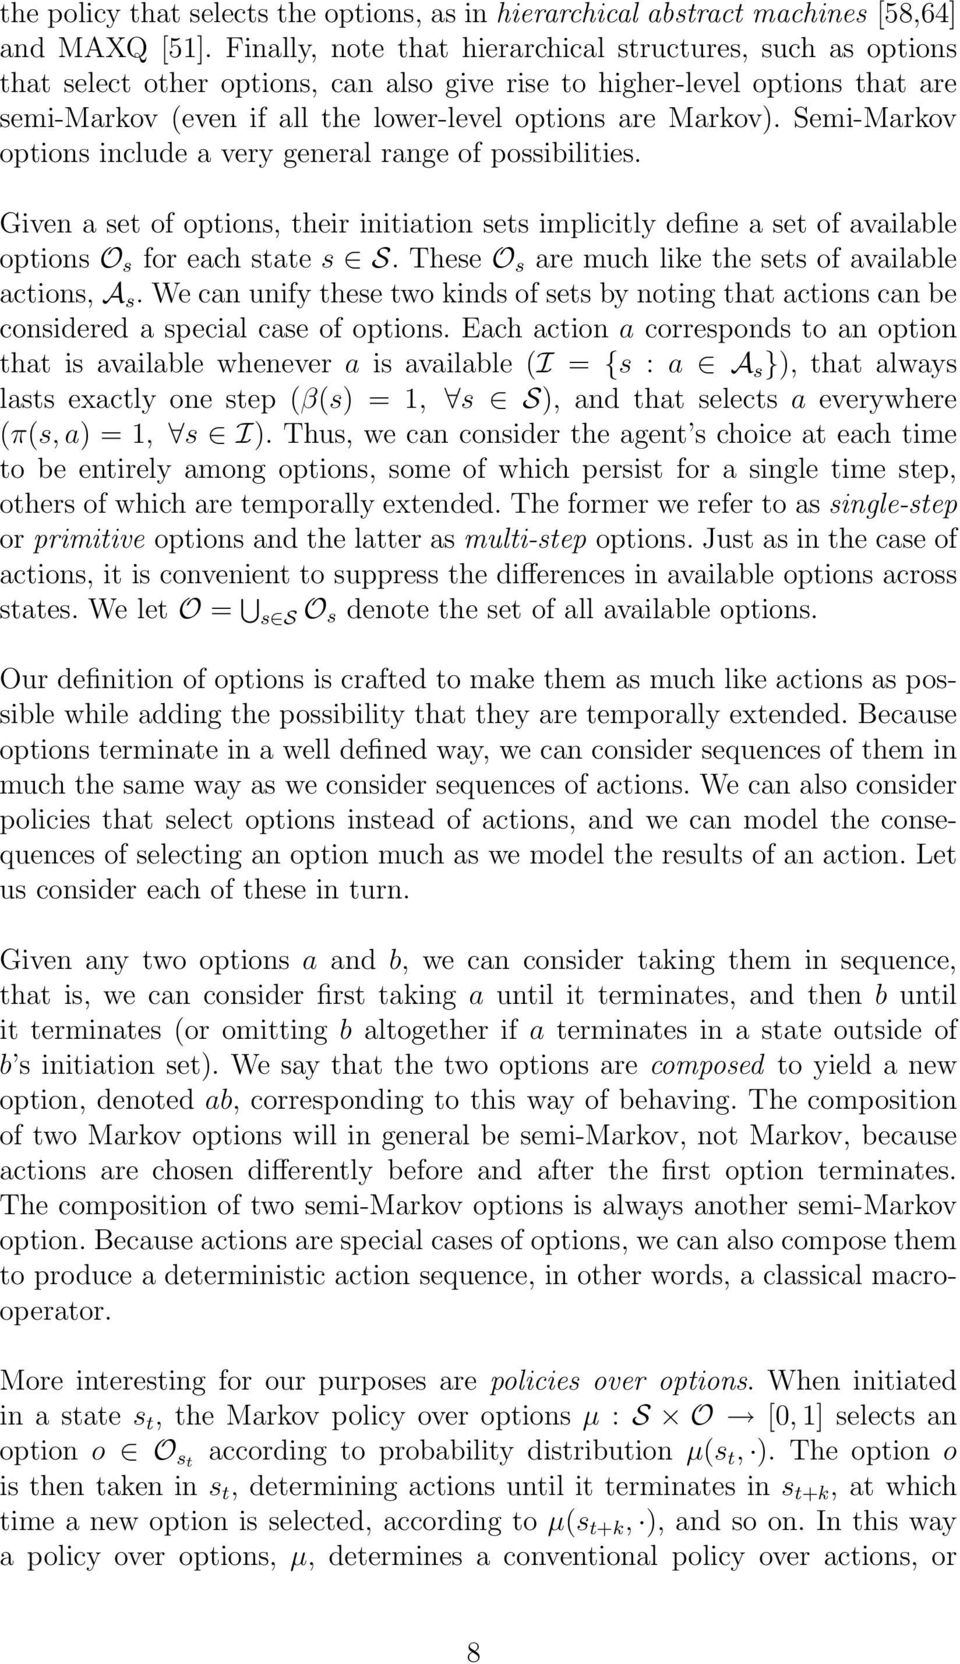 Semi-Markov options include a very general range of possibilities. Given a set of options, their initiation sets implicitly define a set of available options O s for each state s S.